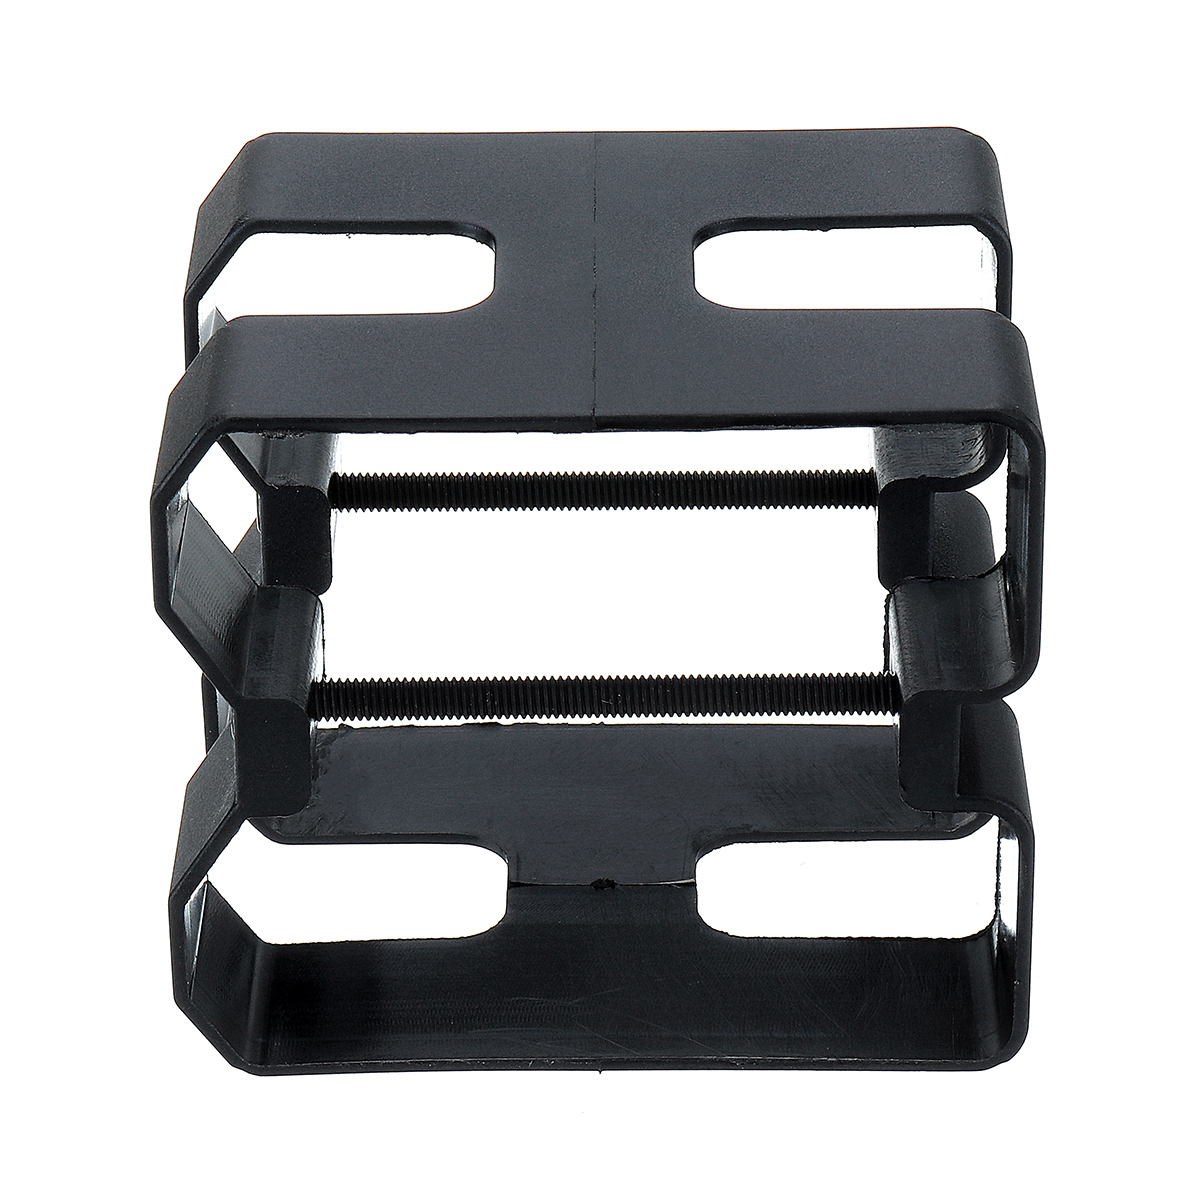 Double Magazine Clip Connector for JinMing M4A1 Scar Gel Ball Toy Holster Double Stack